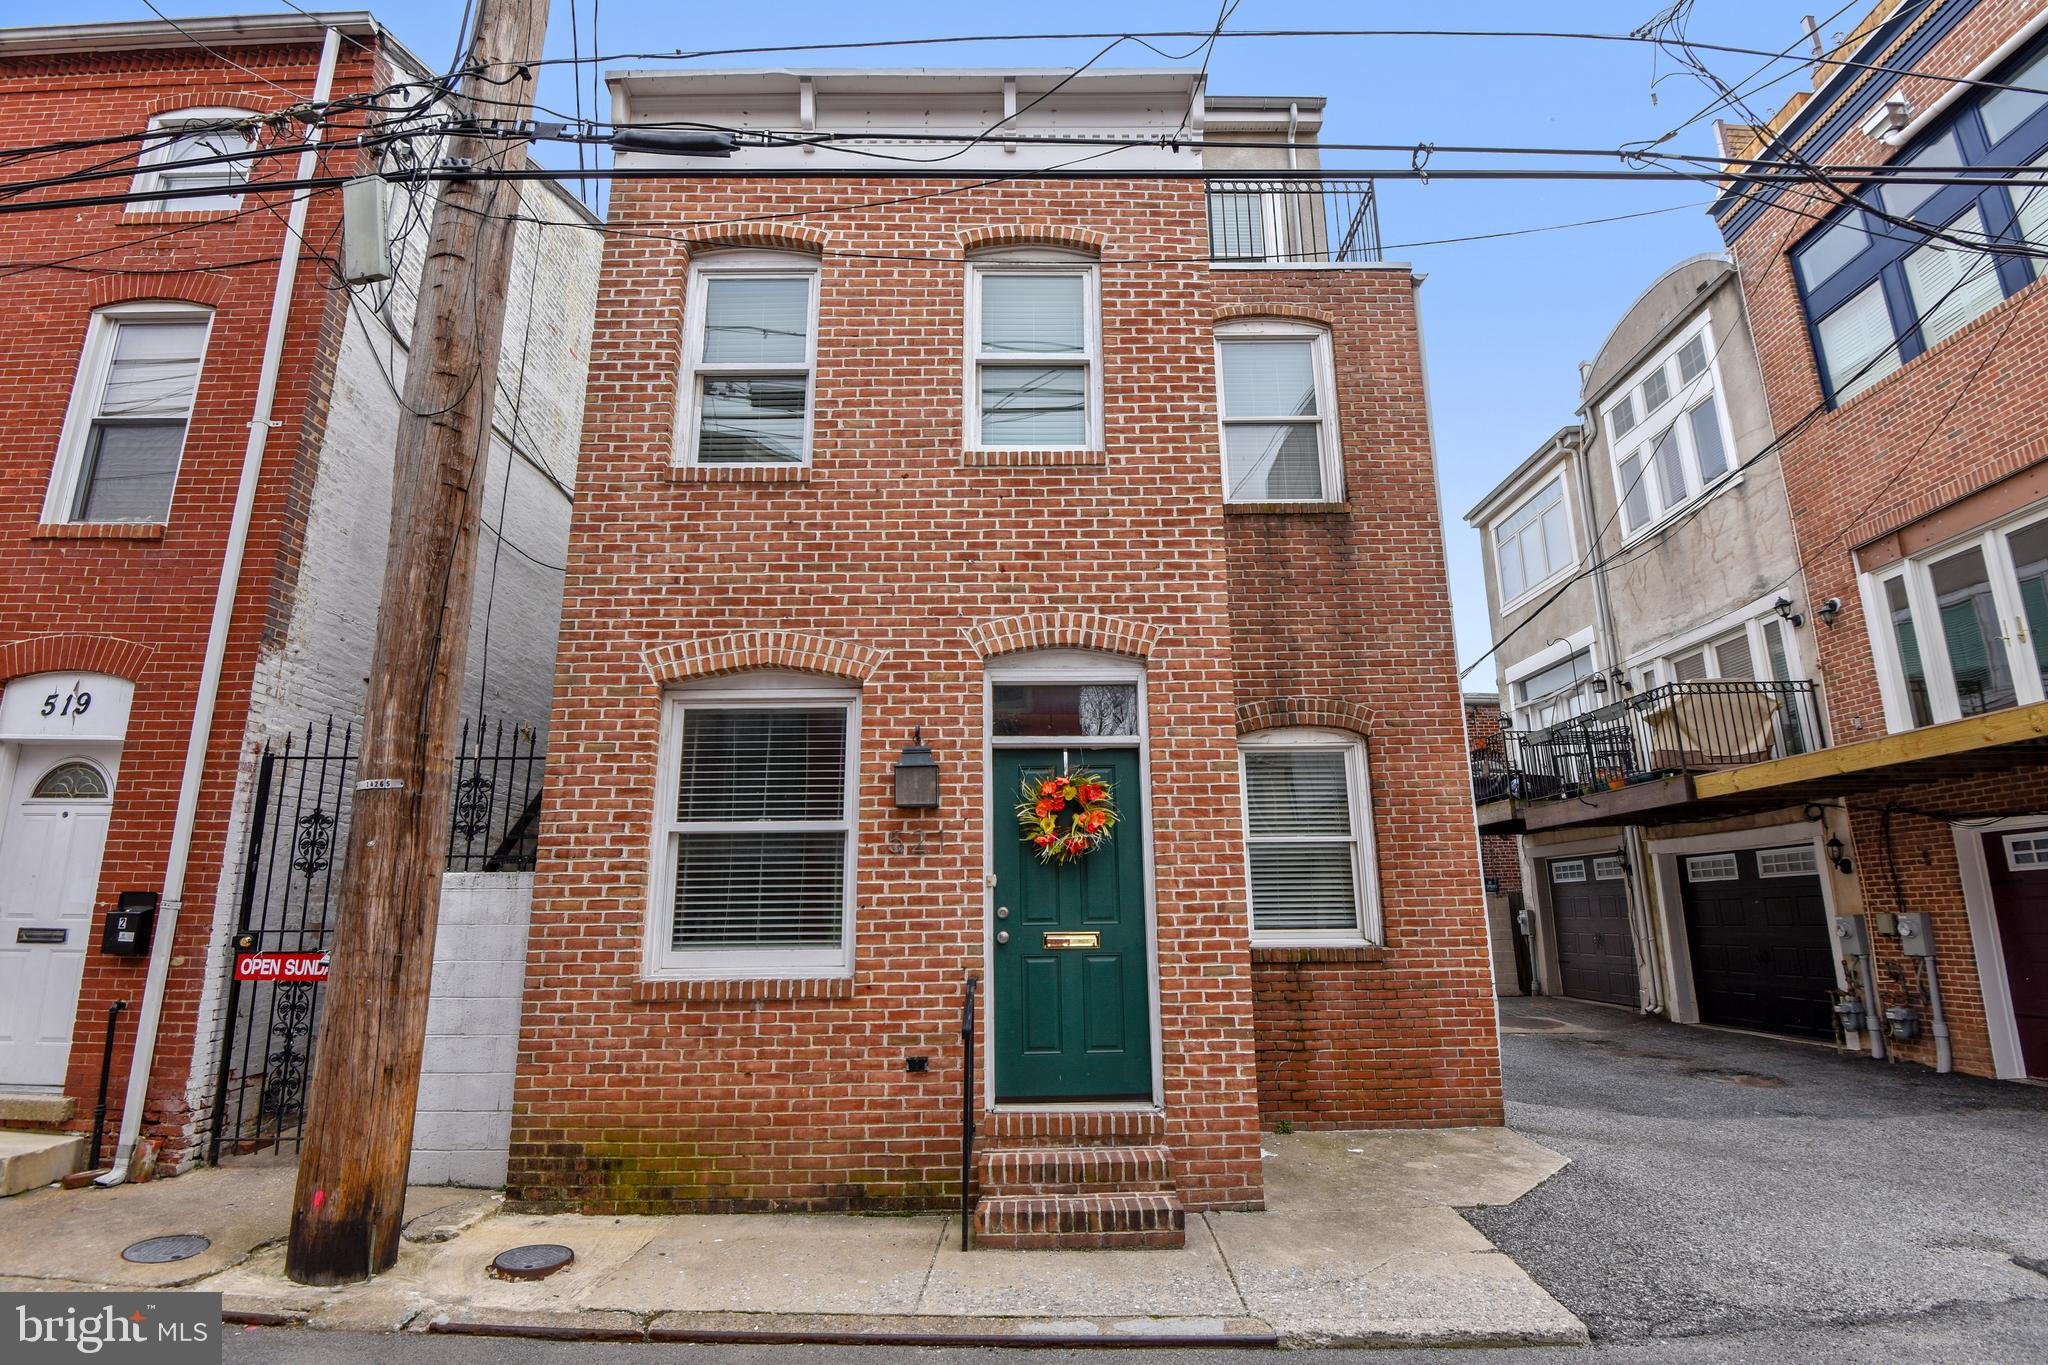 521 S REGESTER STREET, BALTIMORE, MD 21231